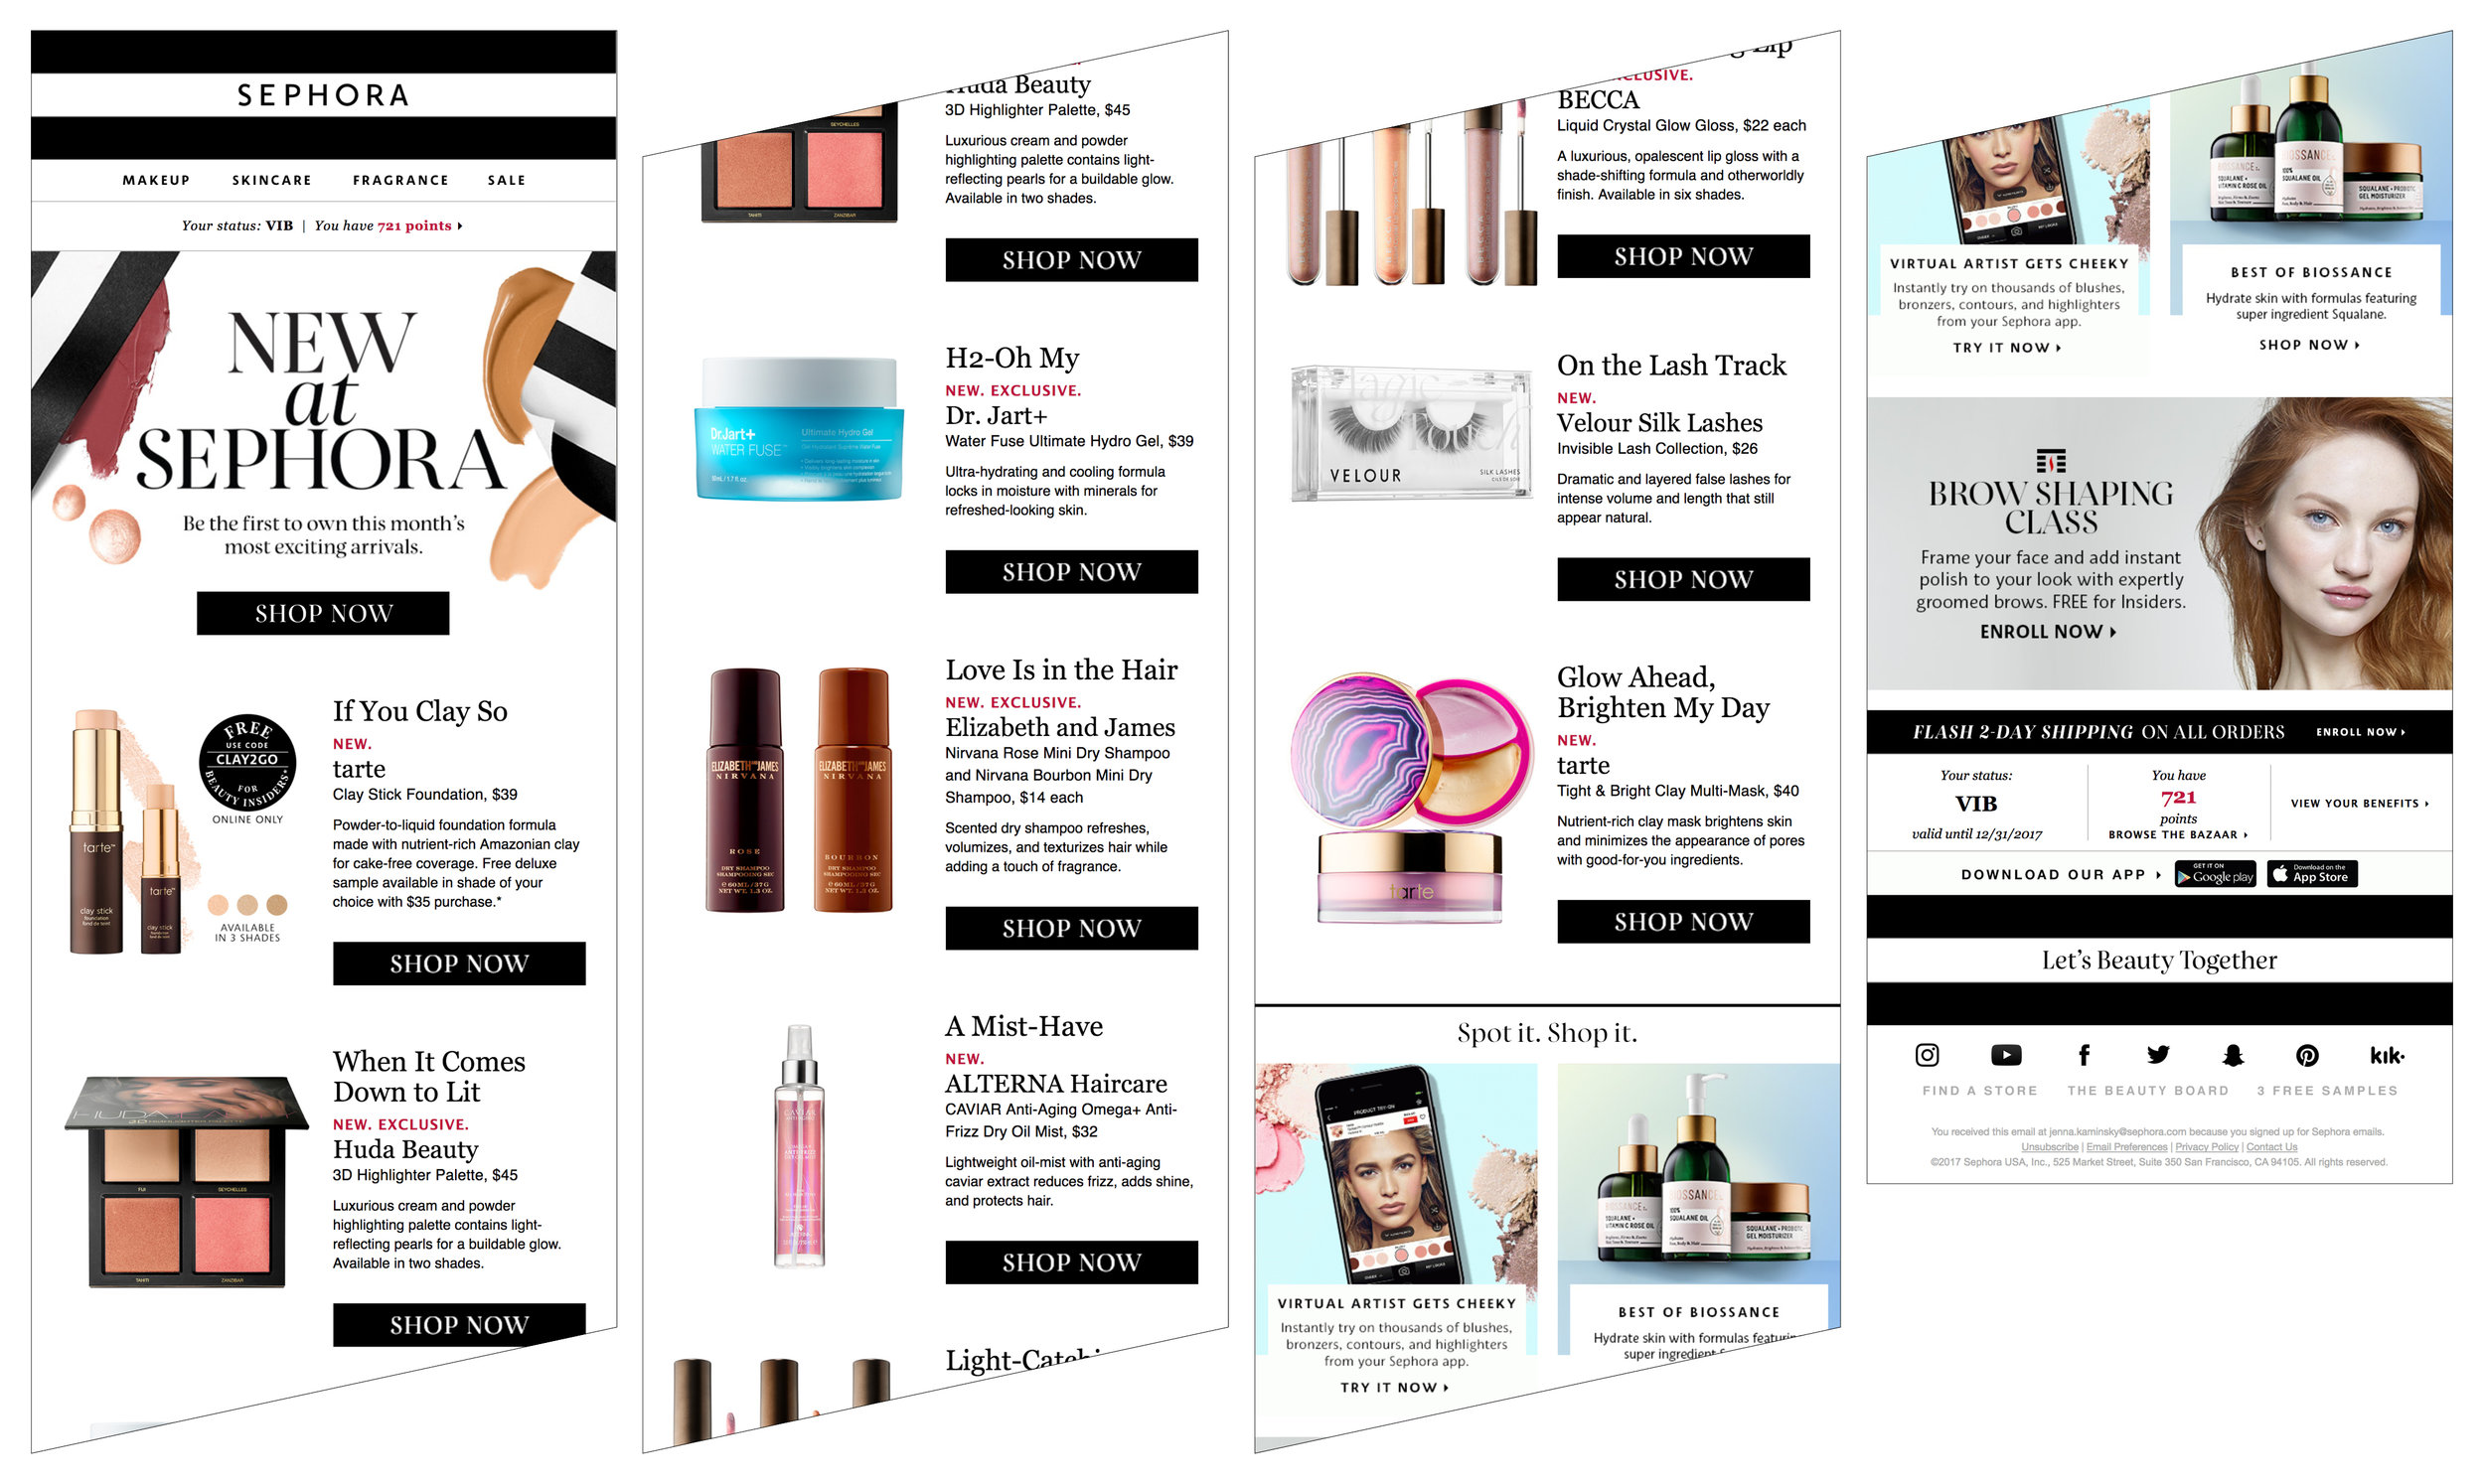 Updated New At Sephora email template.